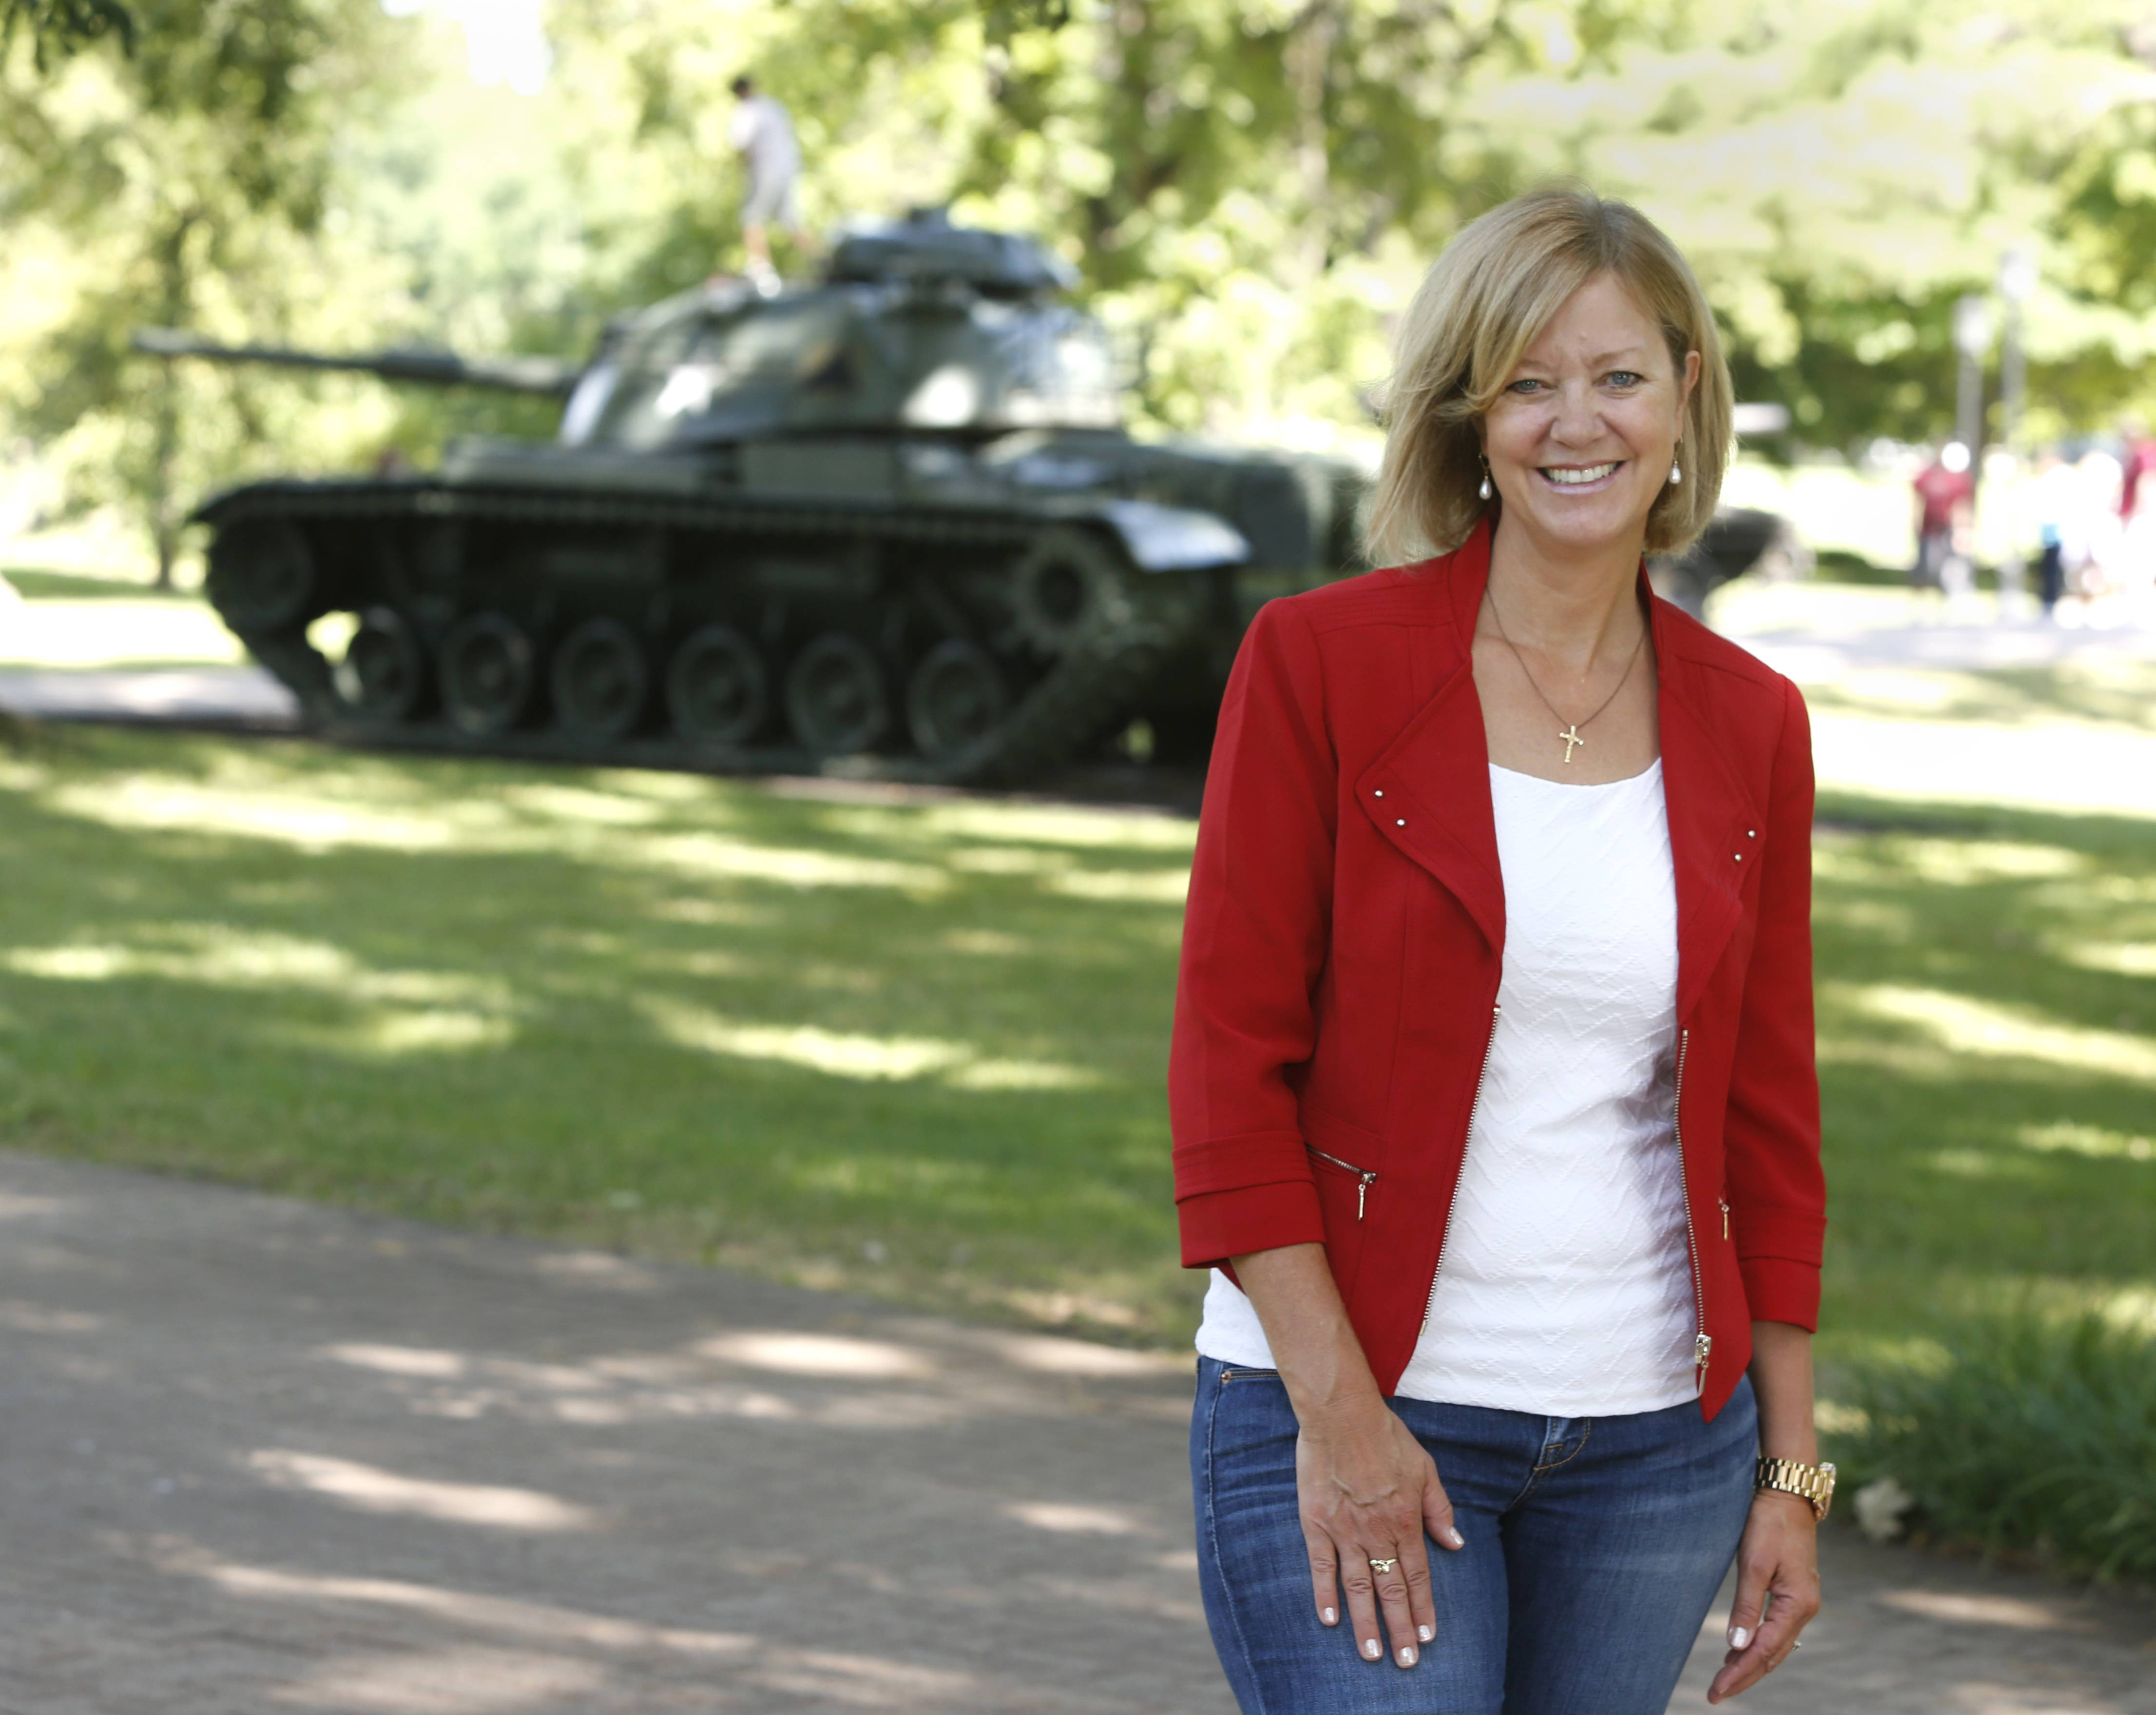 State Rep. Jeanne Ives is circulating petitions to challenge Gov. Bruce Rauner in the Republican primary.